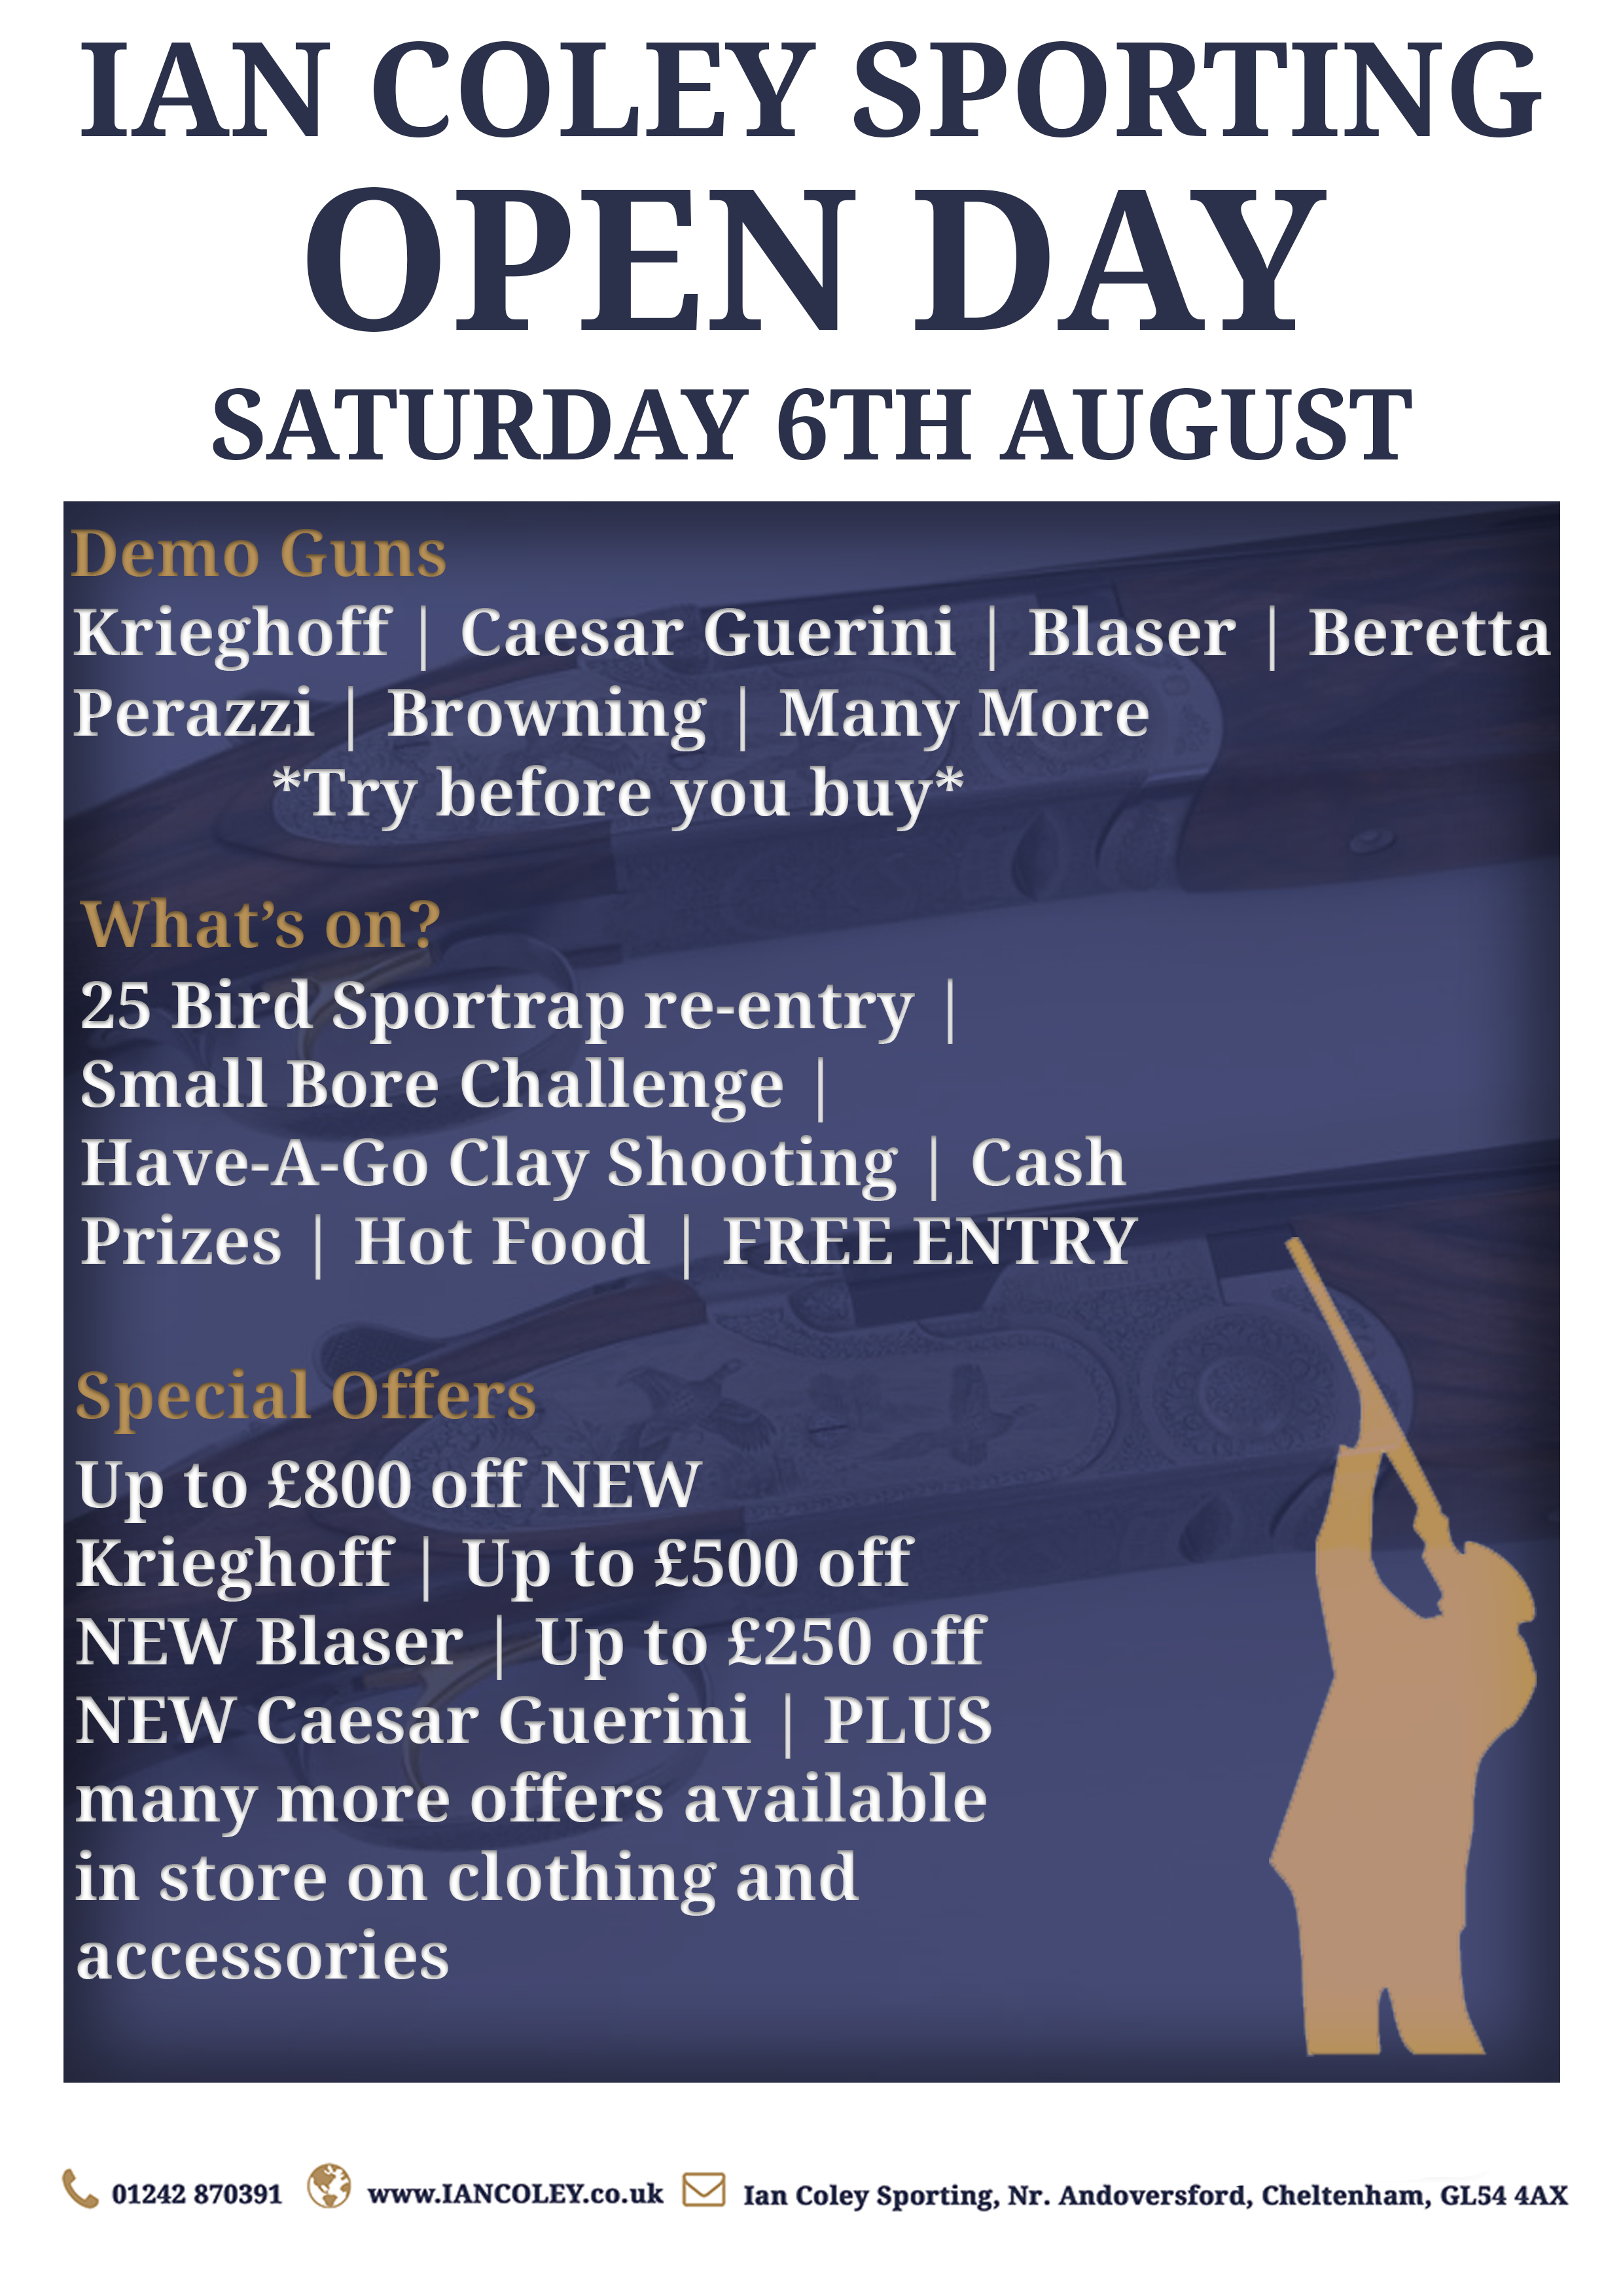 OPEN DAY – SATURDAY 6TH AUGUST